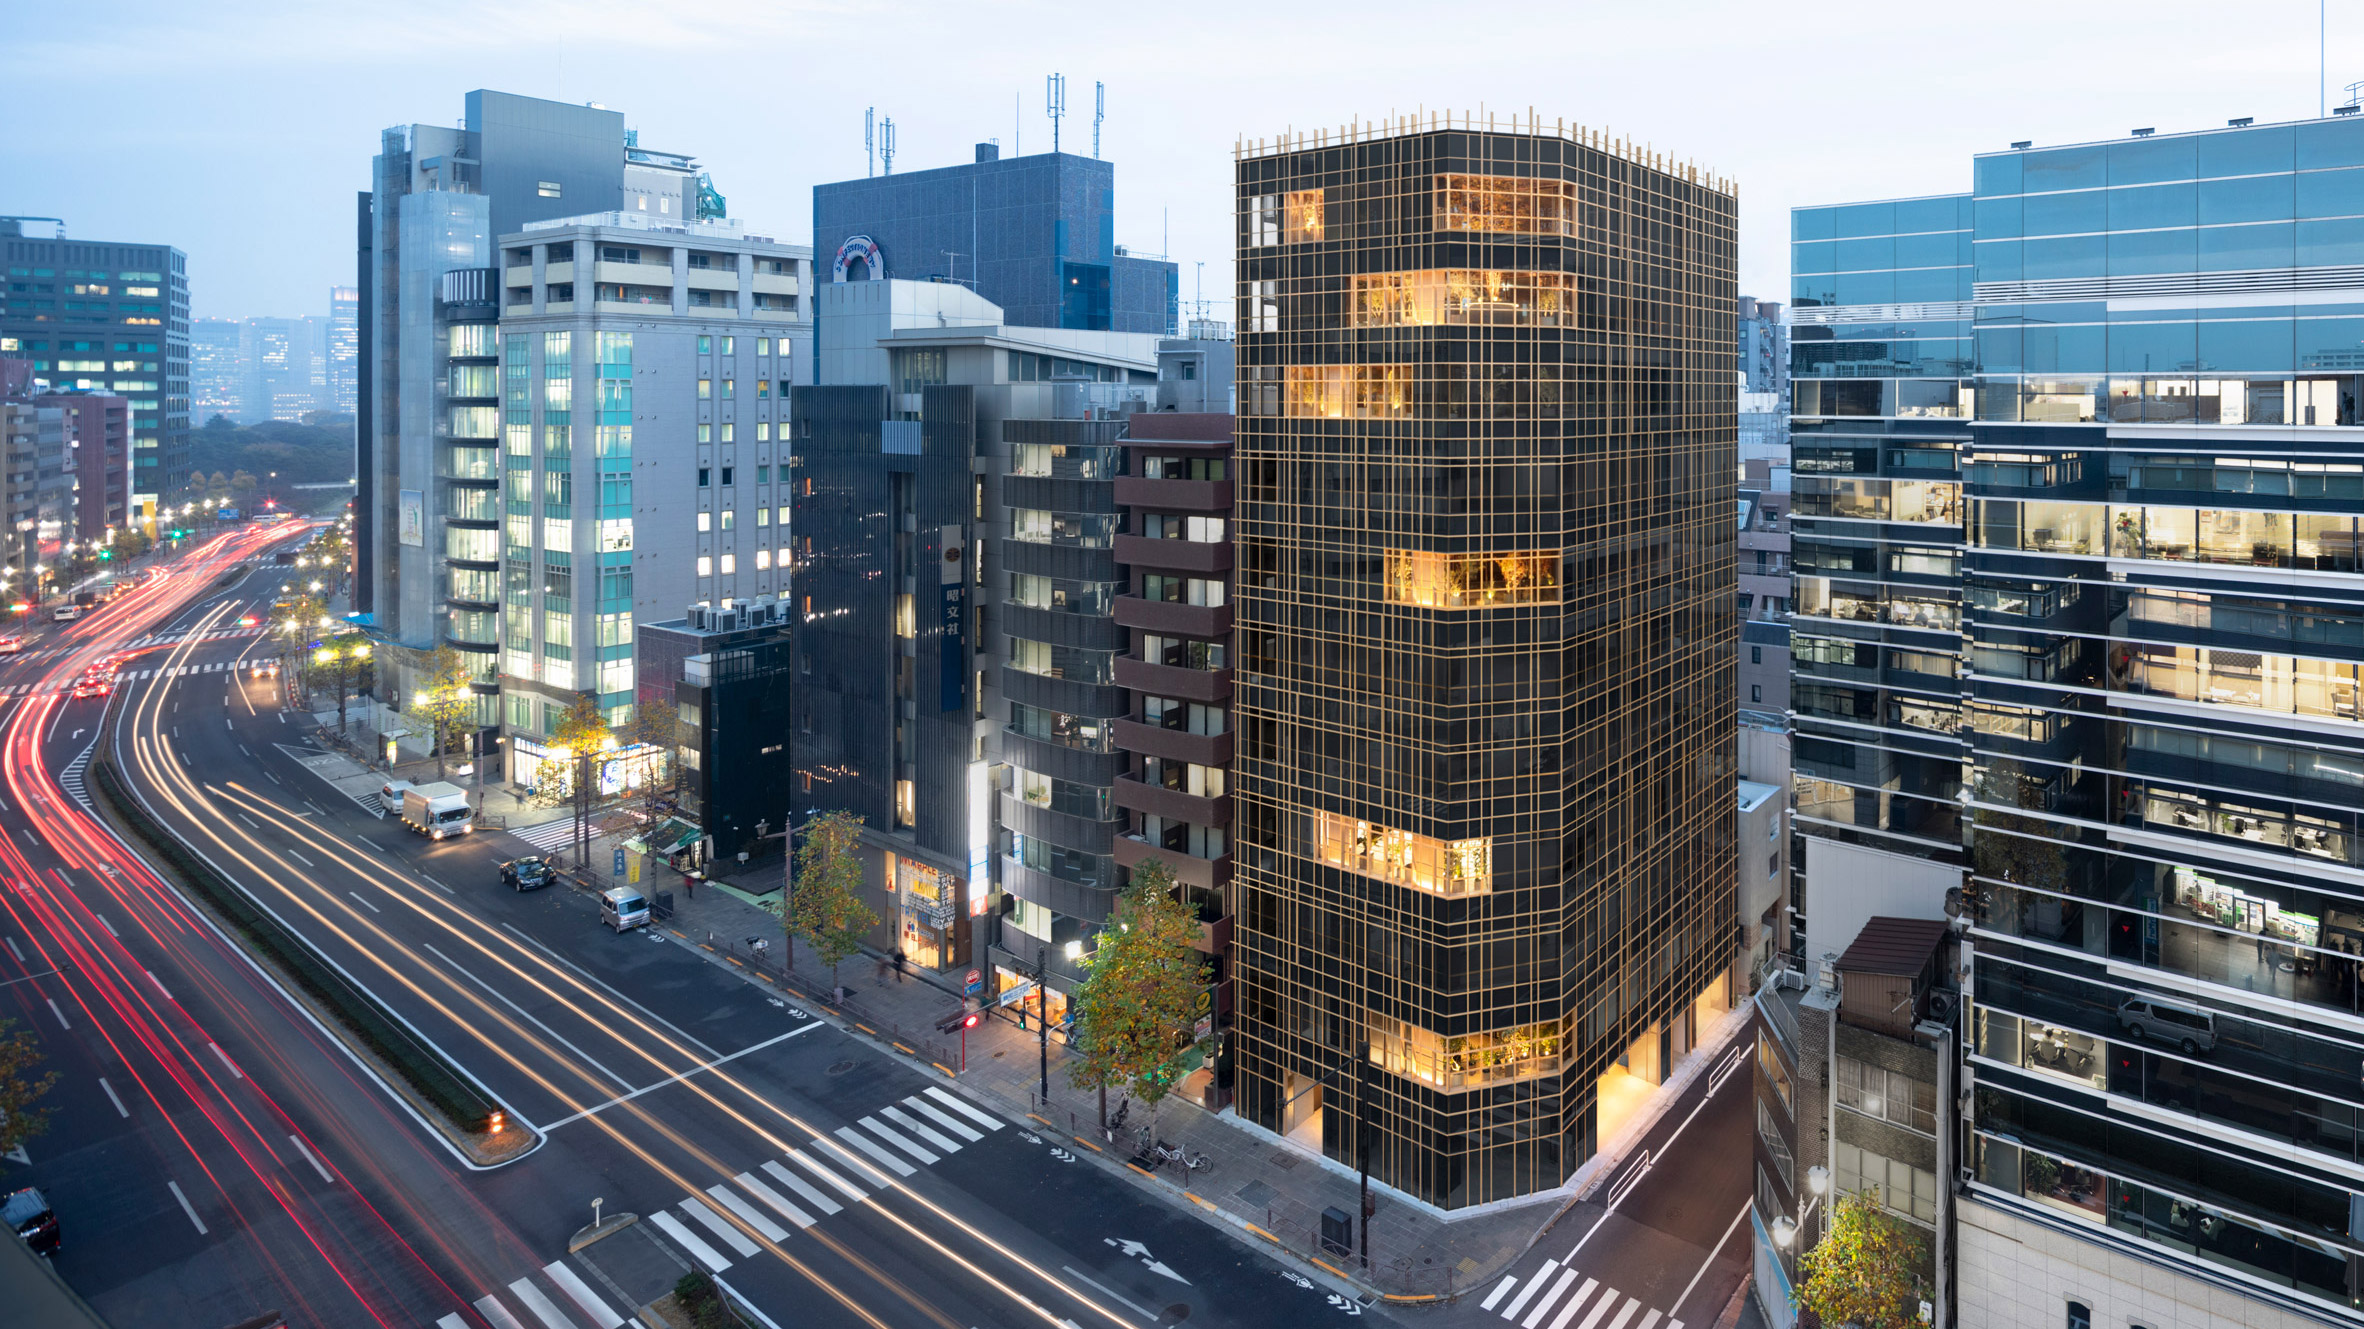 Nendo wraps timber grid around plant-filled balconies of Japanese office